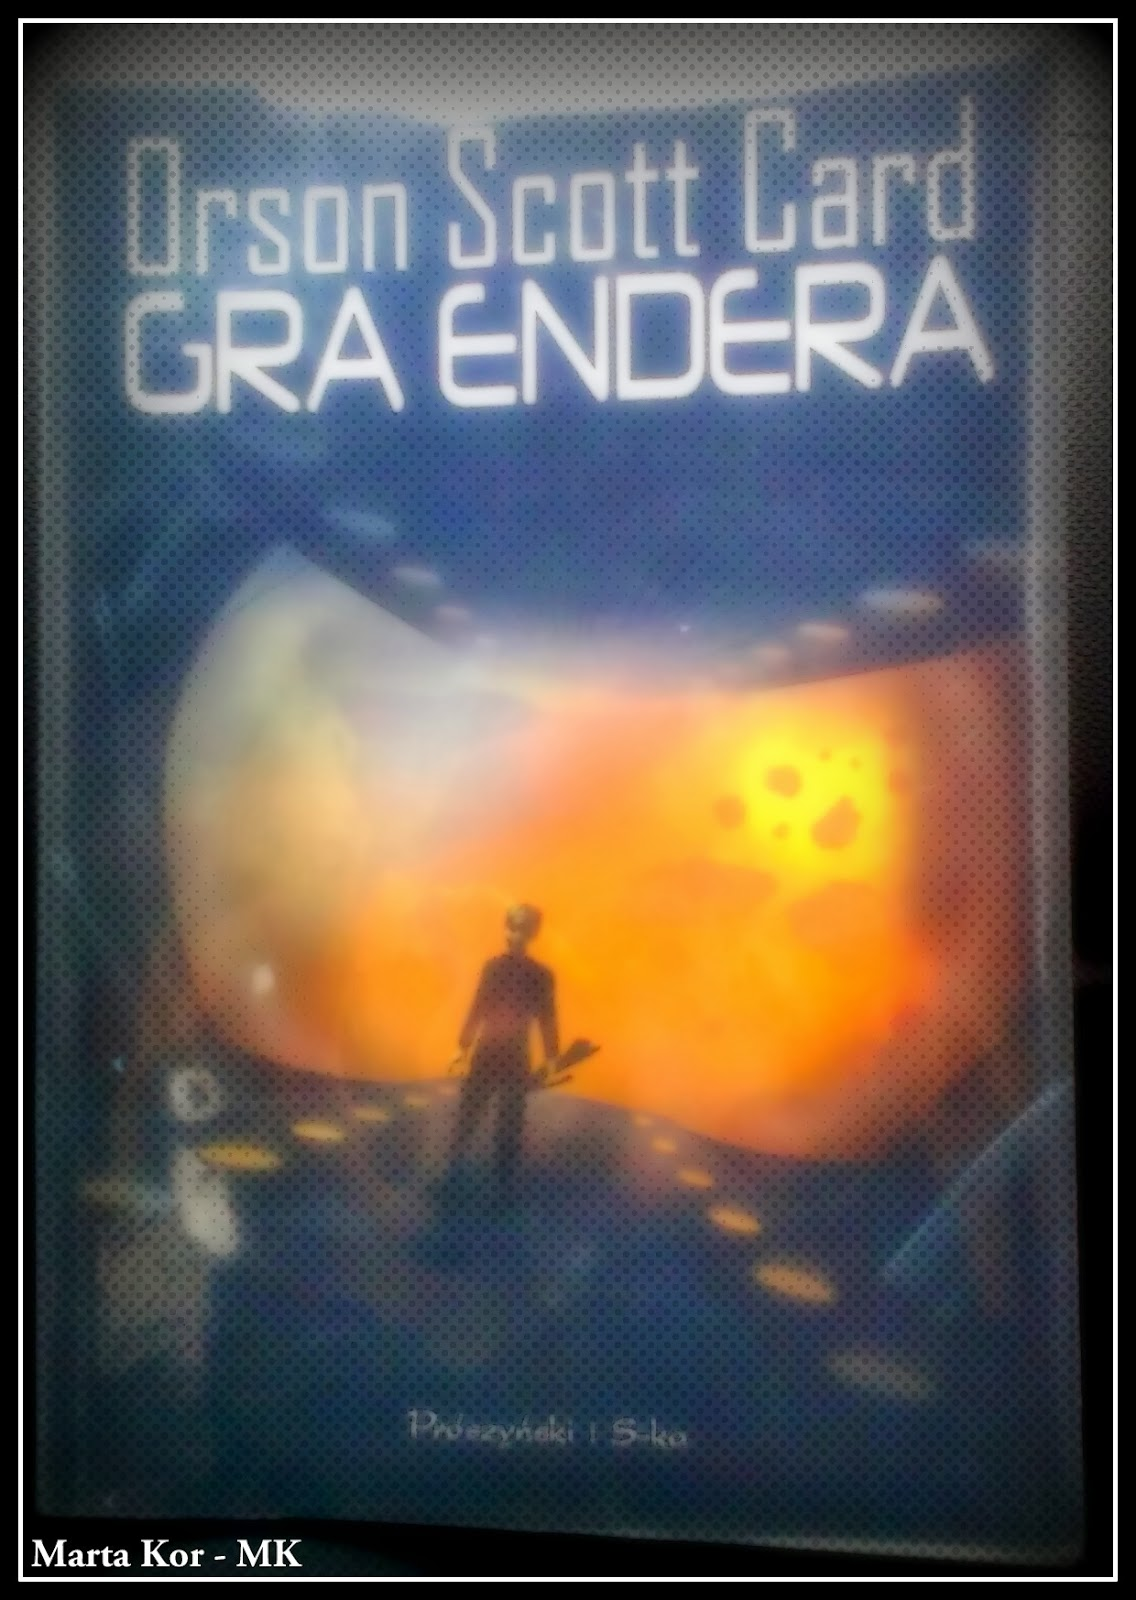 gra-endera-orson-scott-card